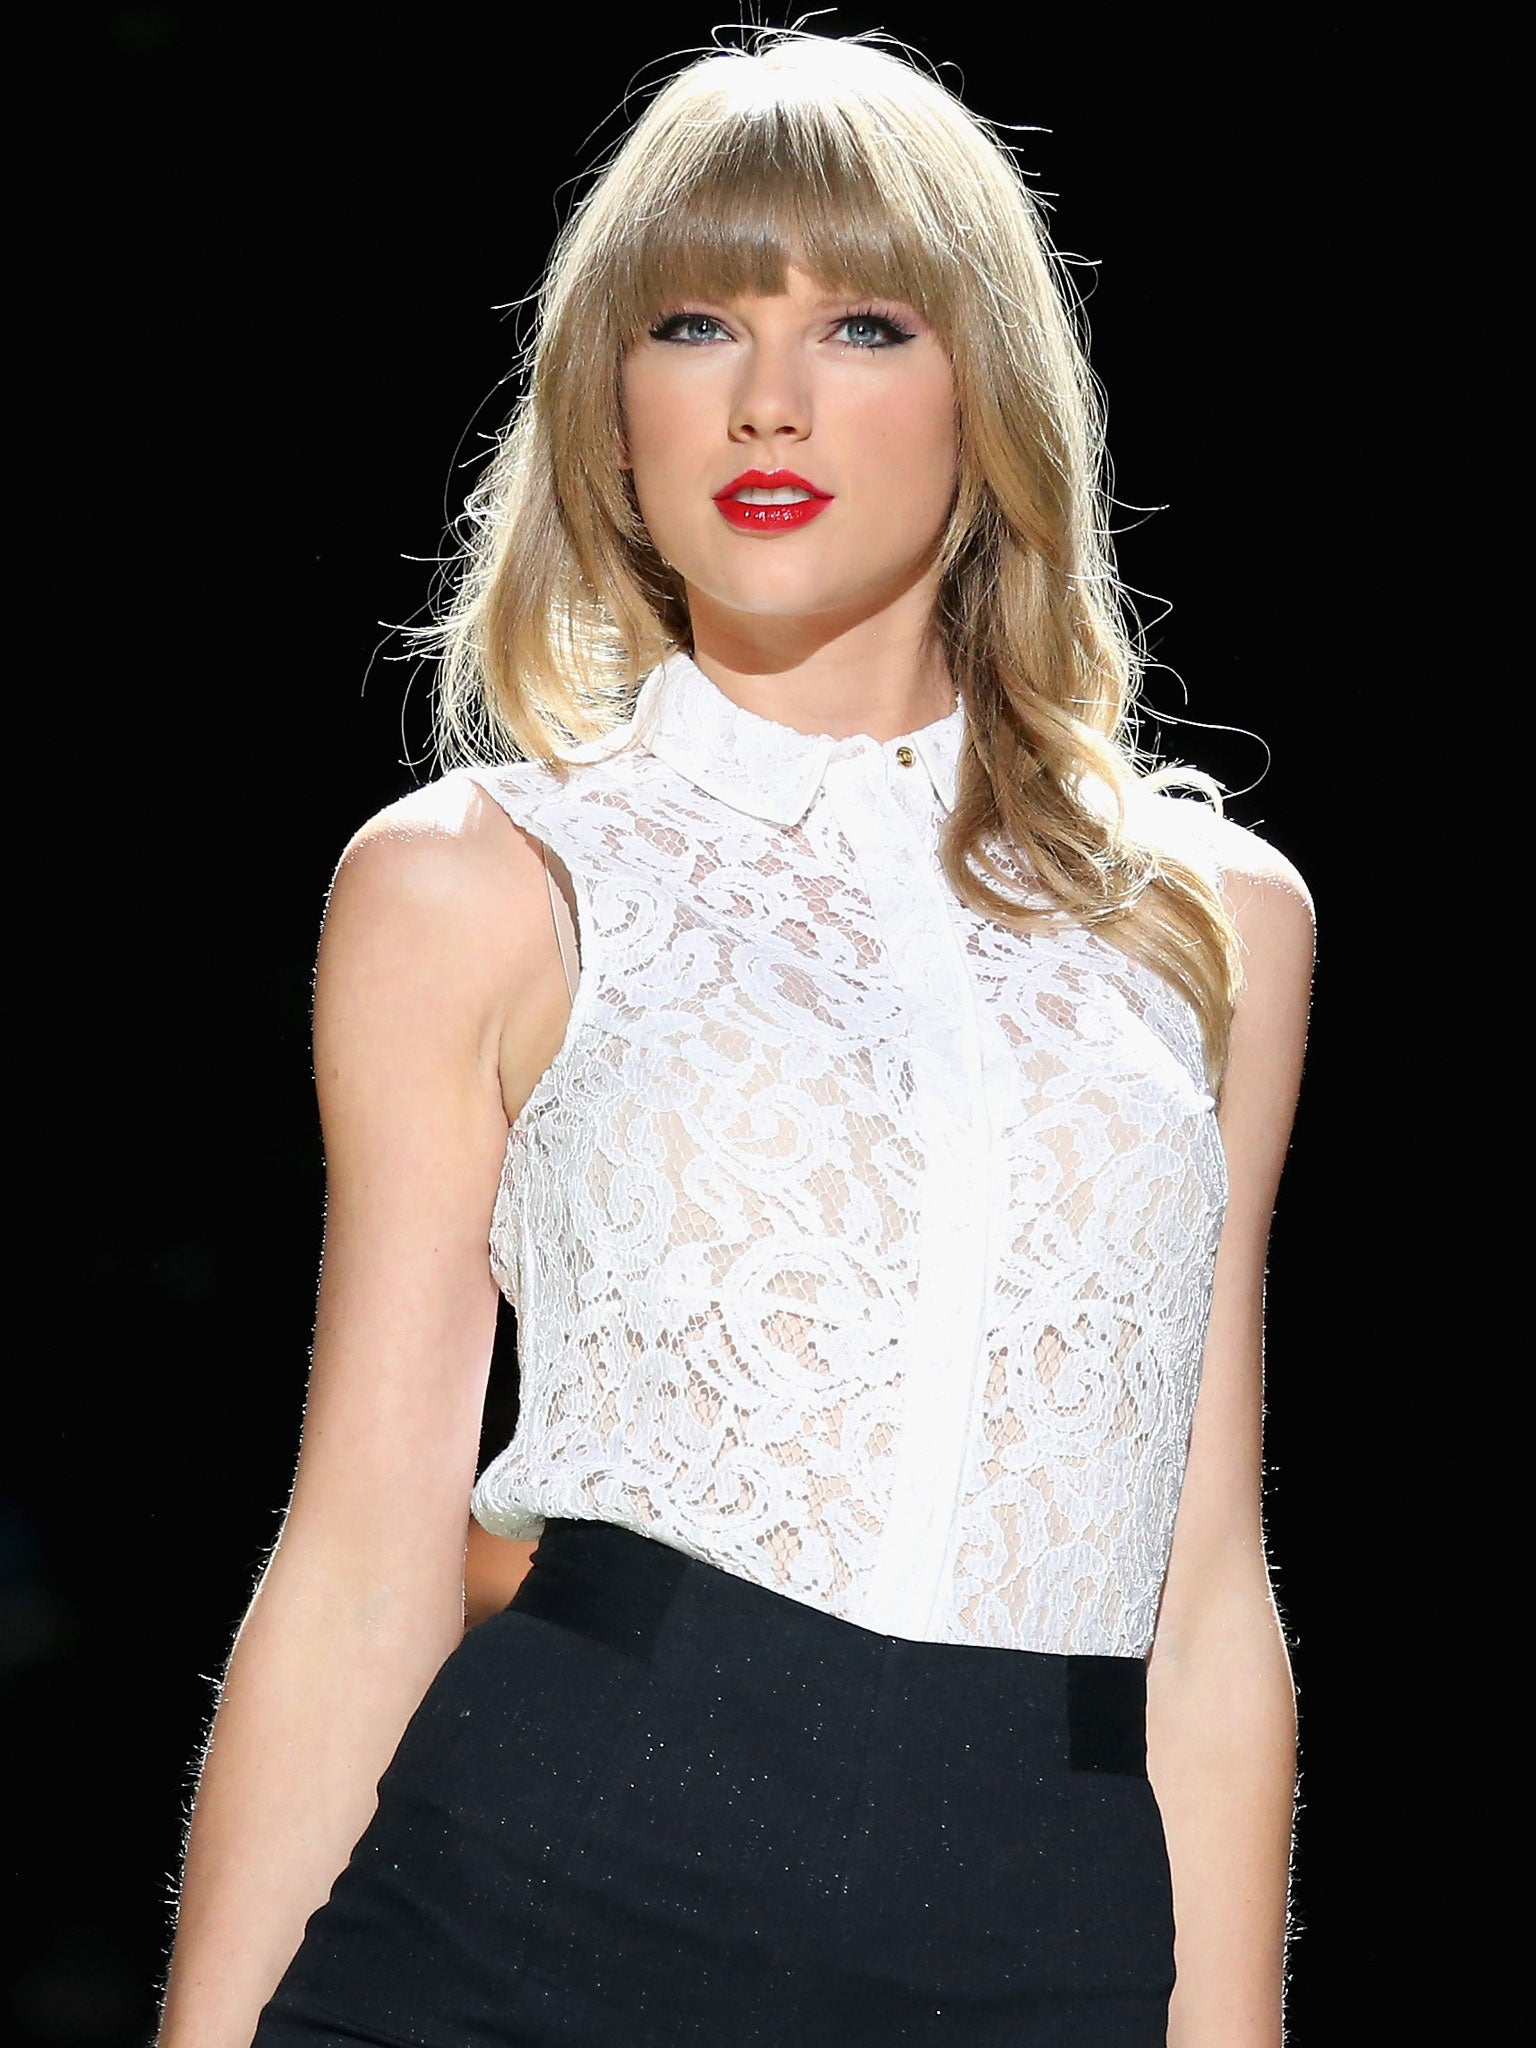 Country Music Star Taylor Swift The New Country Music Is All About